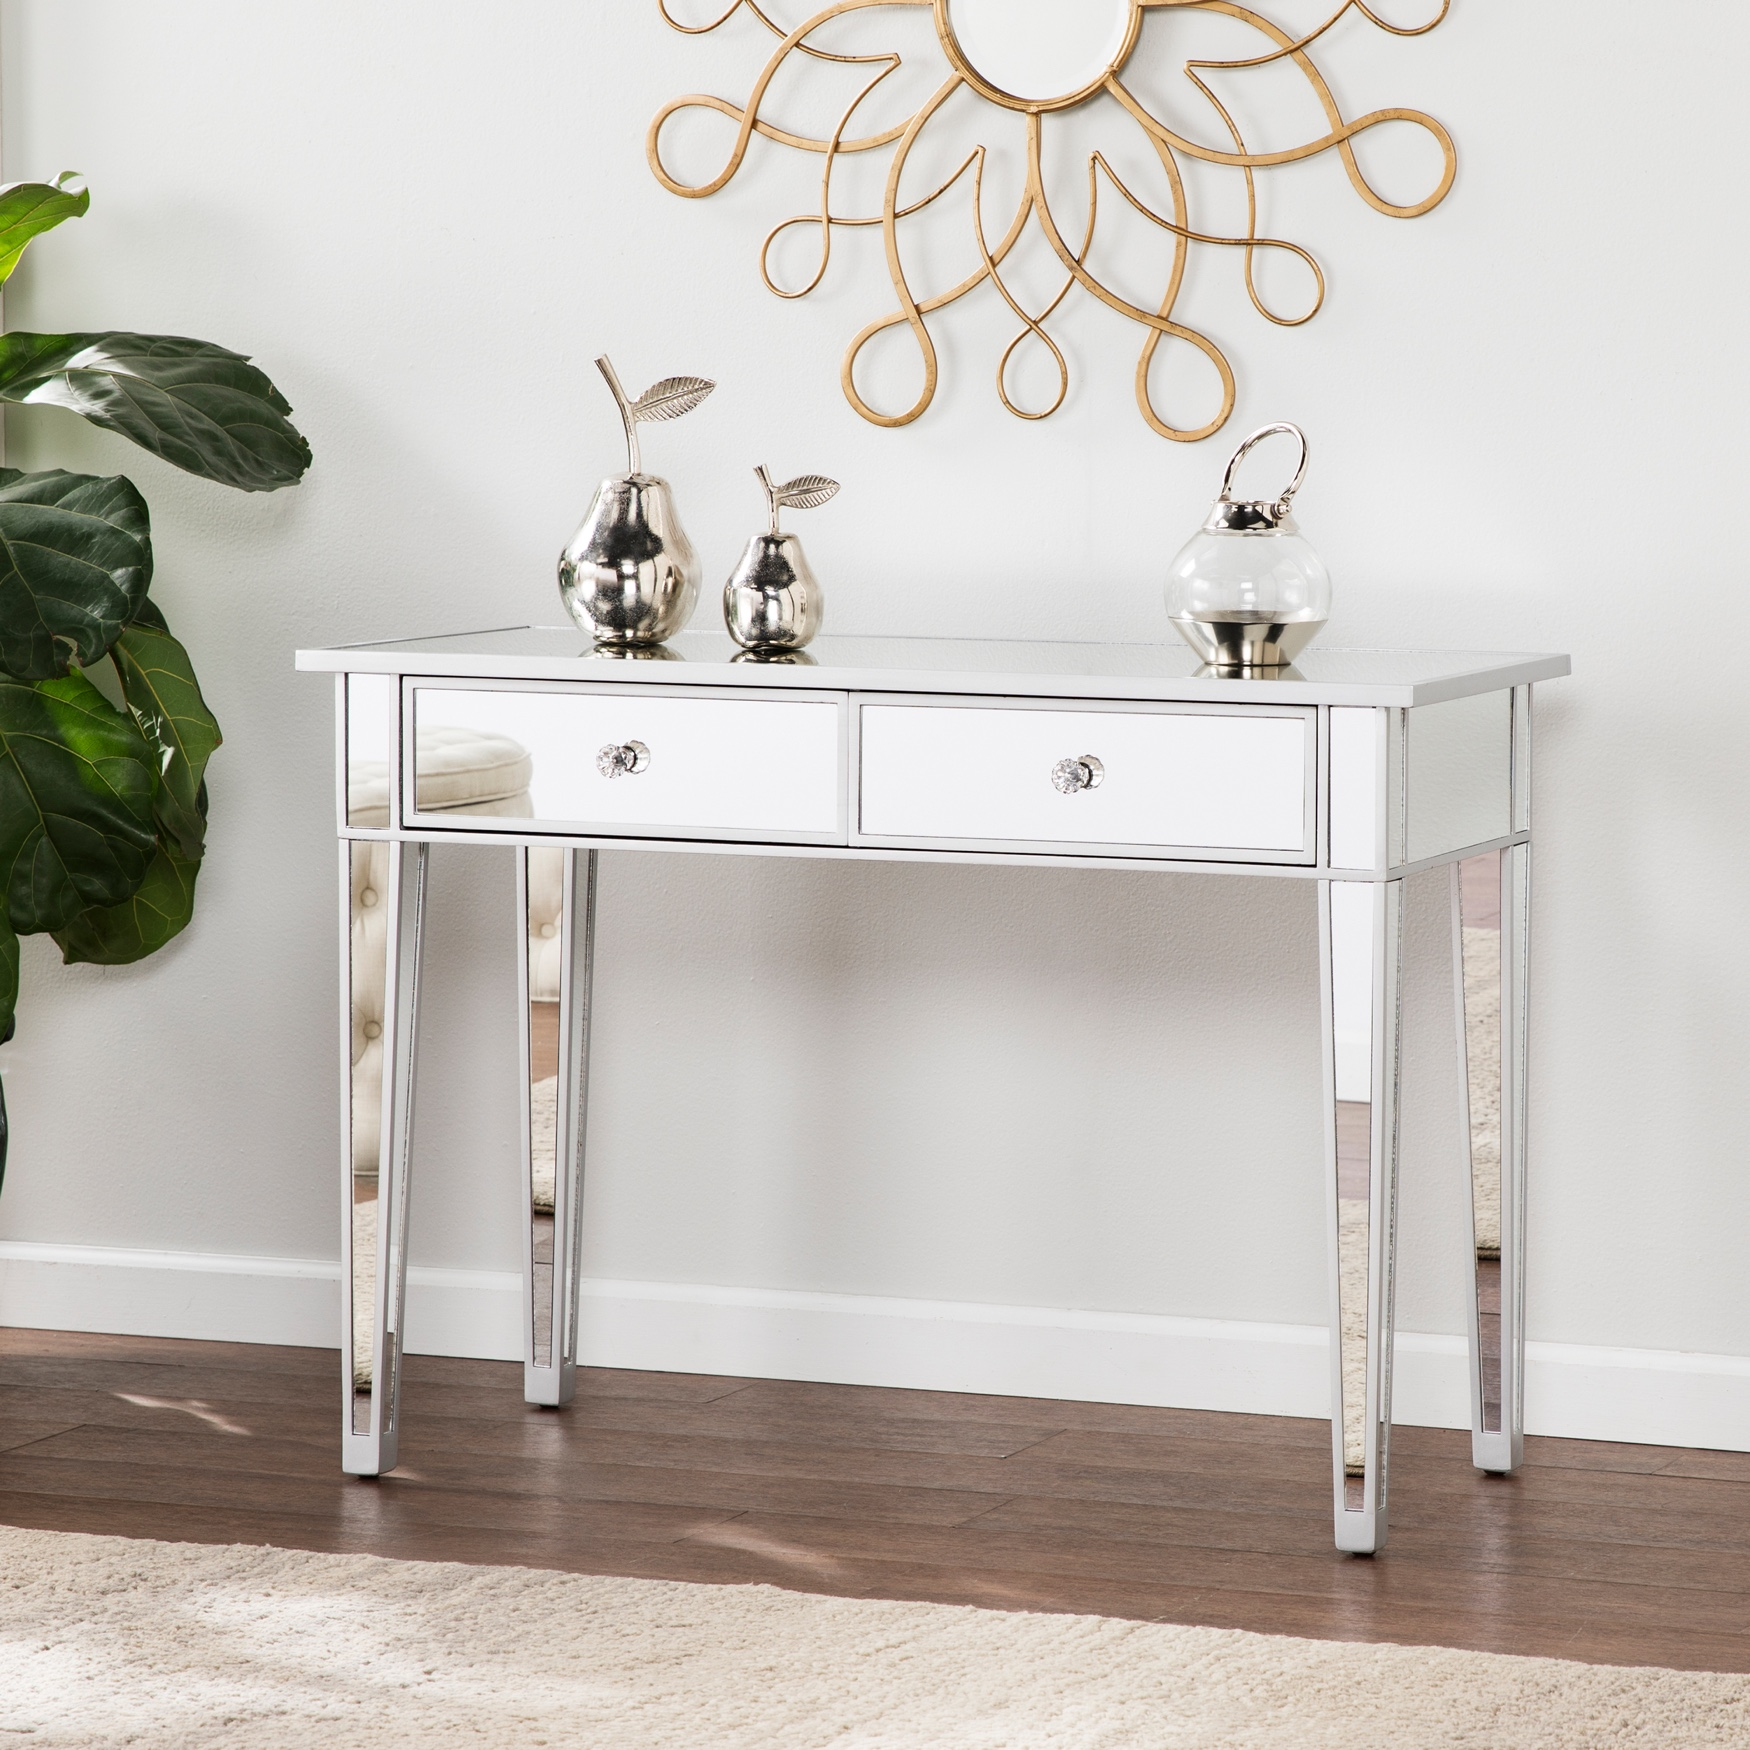 Mirage Mirrored 2-Drawer Console Table, SILVER